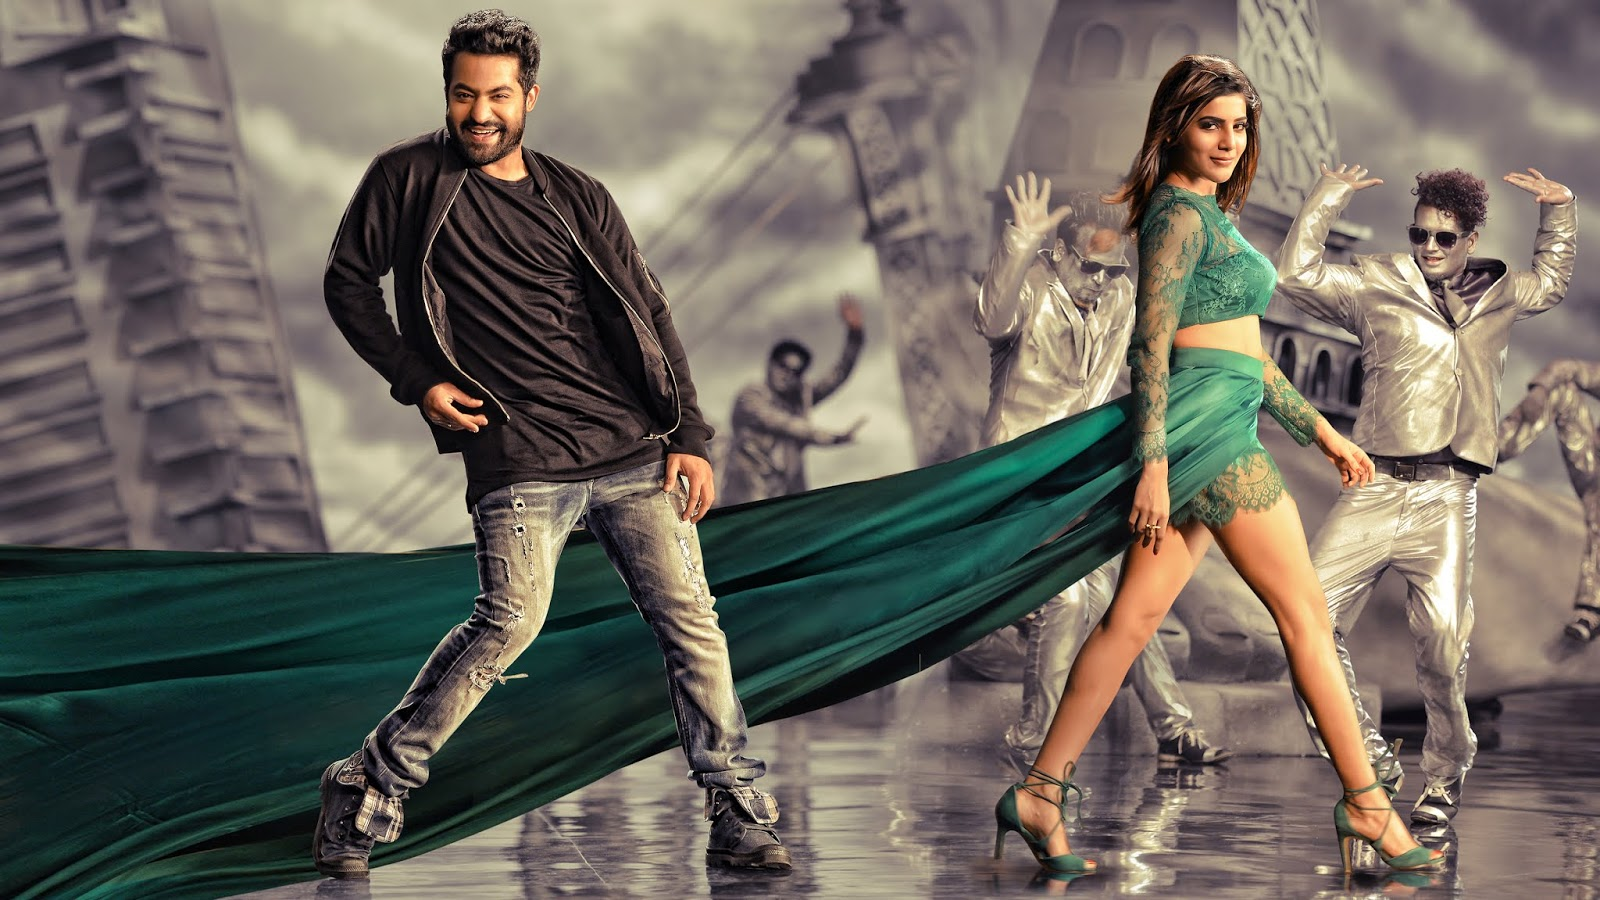 Samantha Ruth Prabhu Janatha Garage 1366x768 Download Hd Wallpaper Wallpapertip